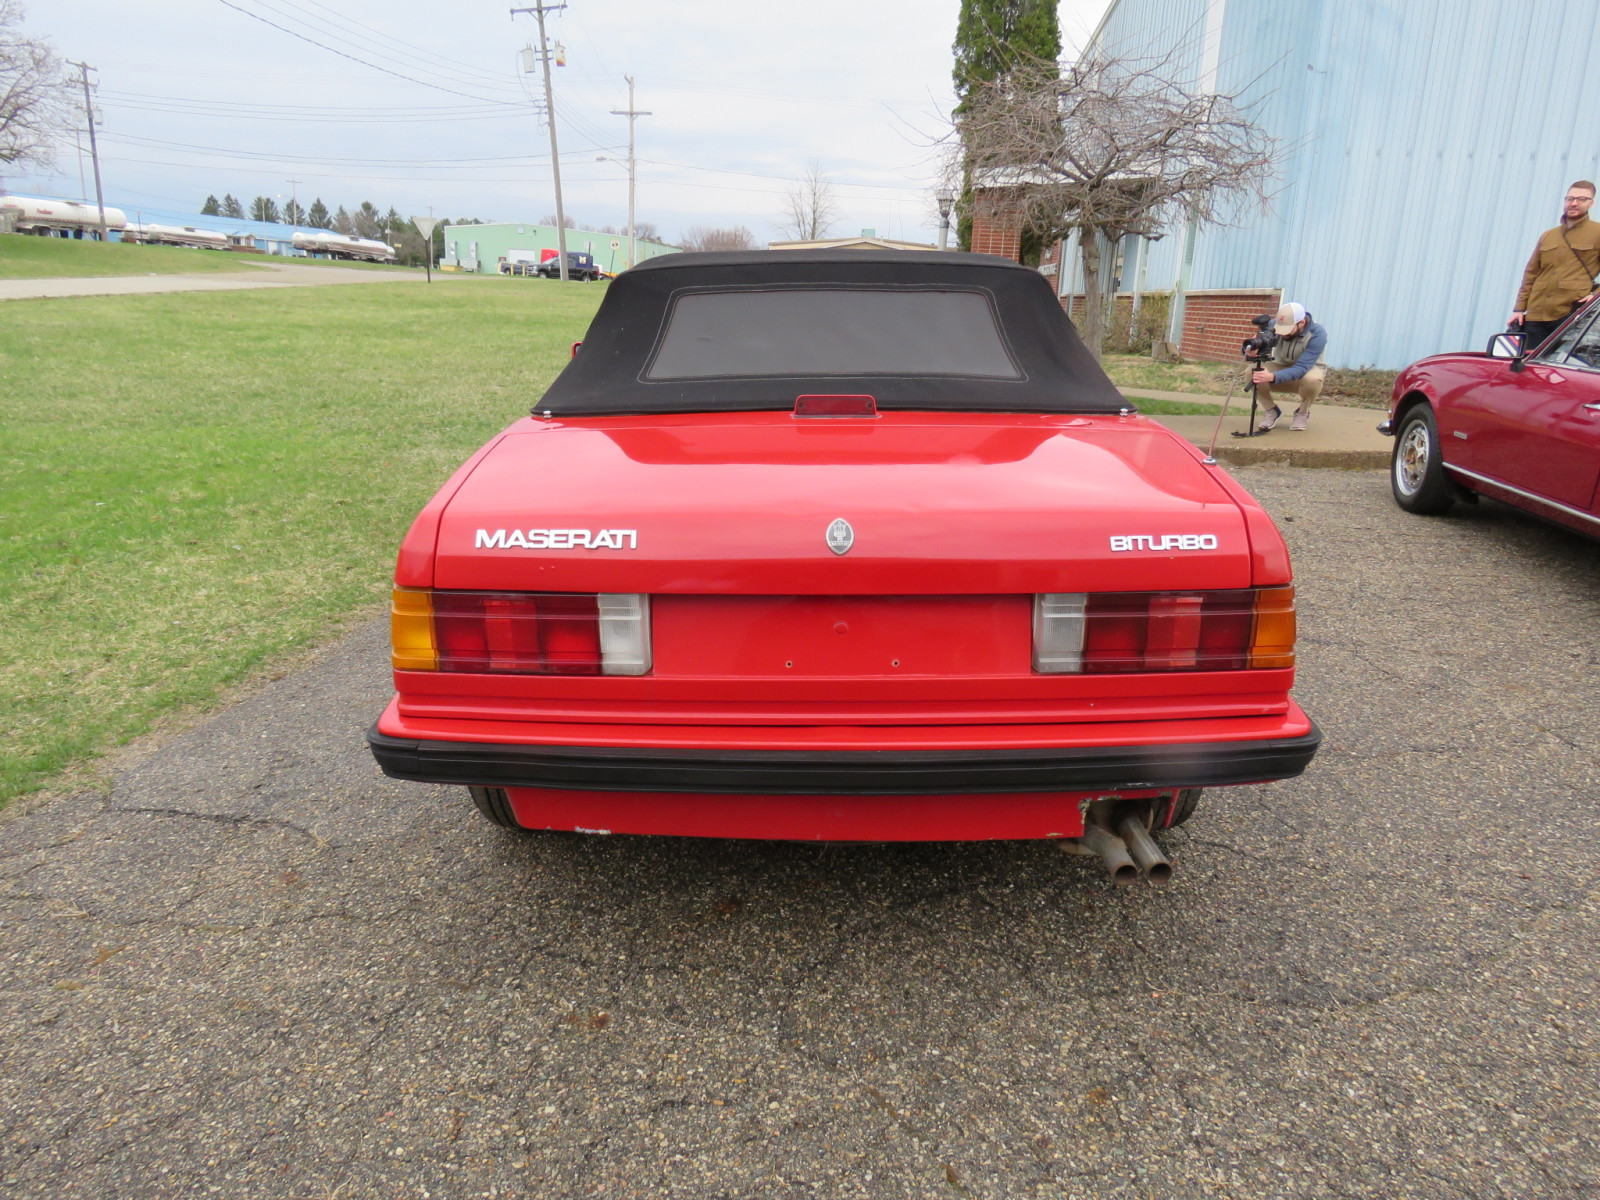 1986 MaserattiB1 Turbo Convertible - Image 6